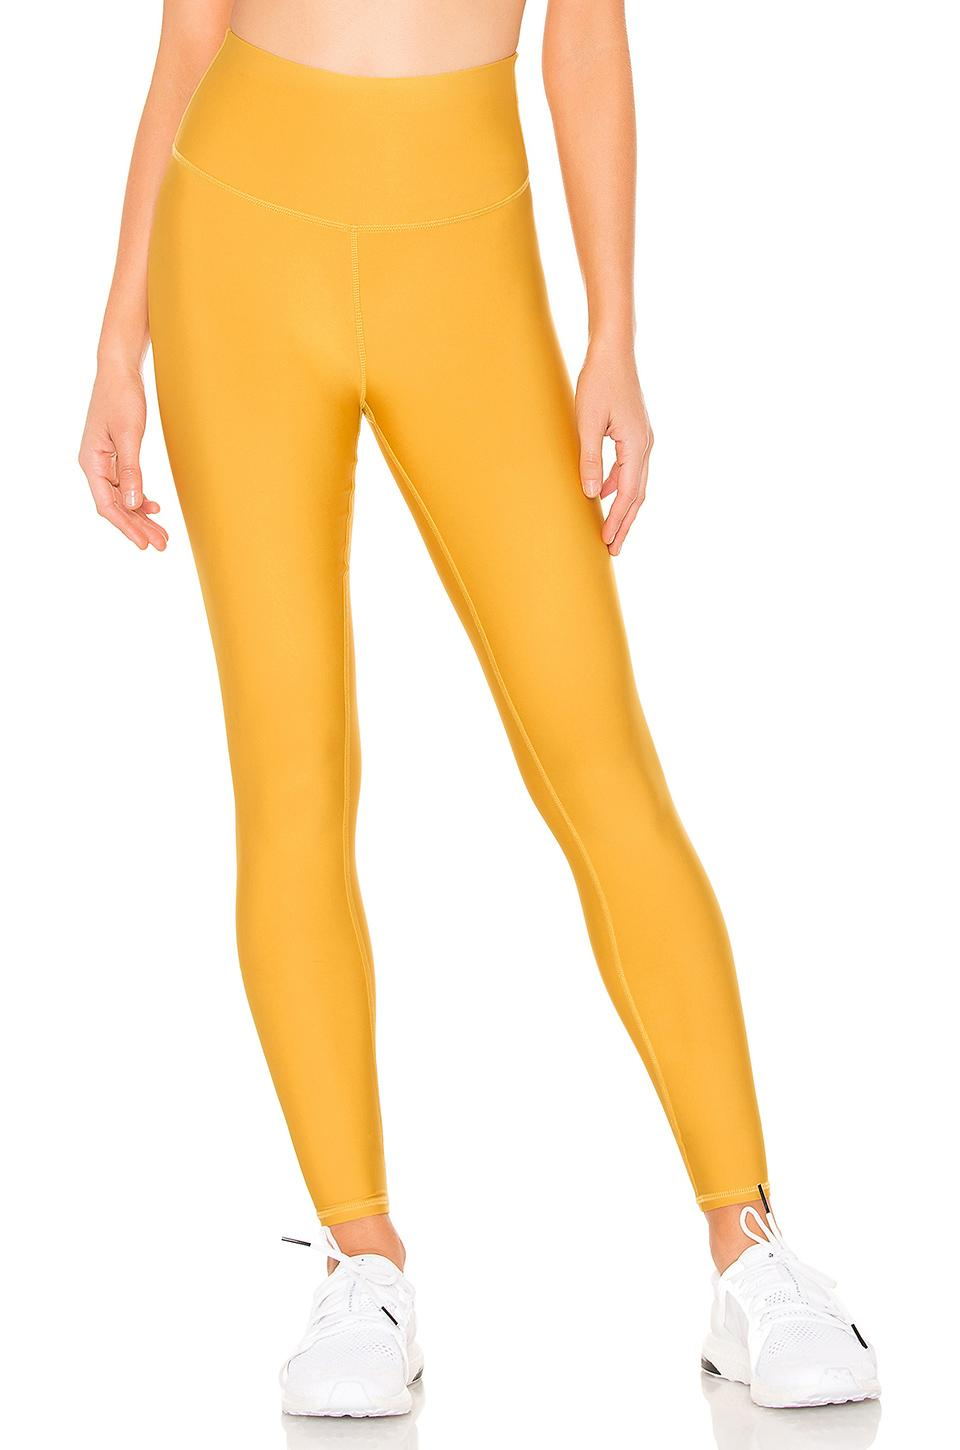 295046dcc54157 ... Alo Yoga - Yellow High Waist Airlift Legging - Lyst. Visit REVOLVE. Tap  to visit site